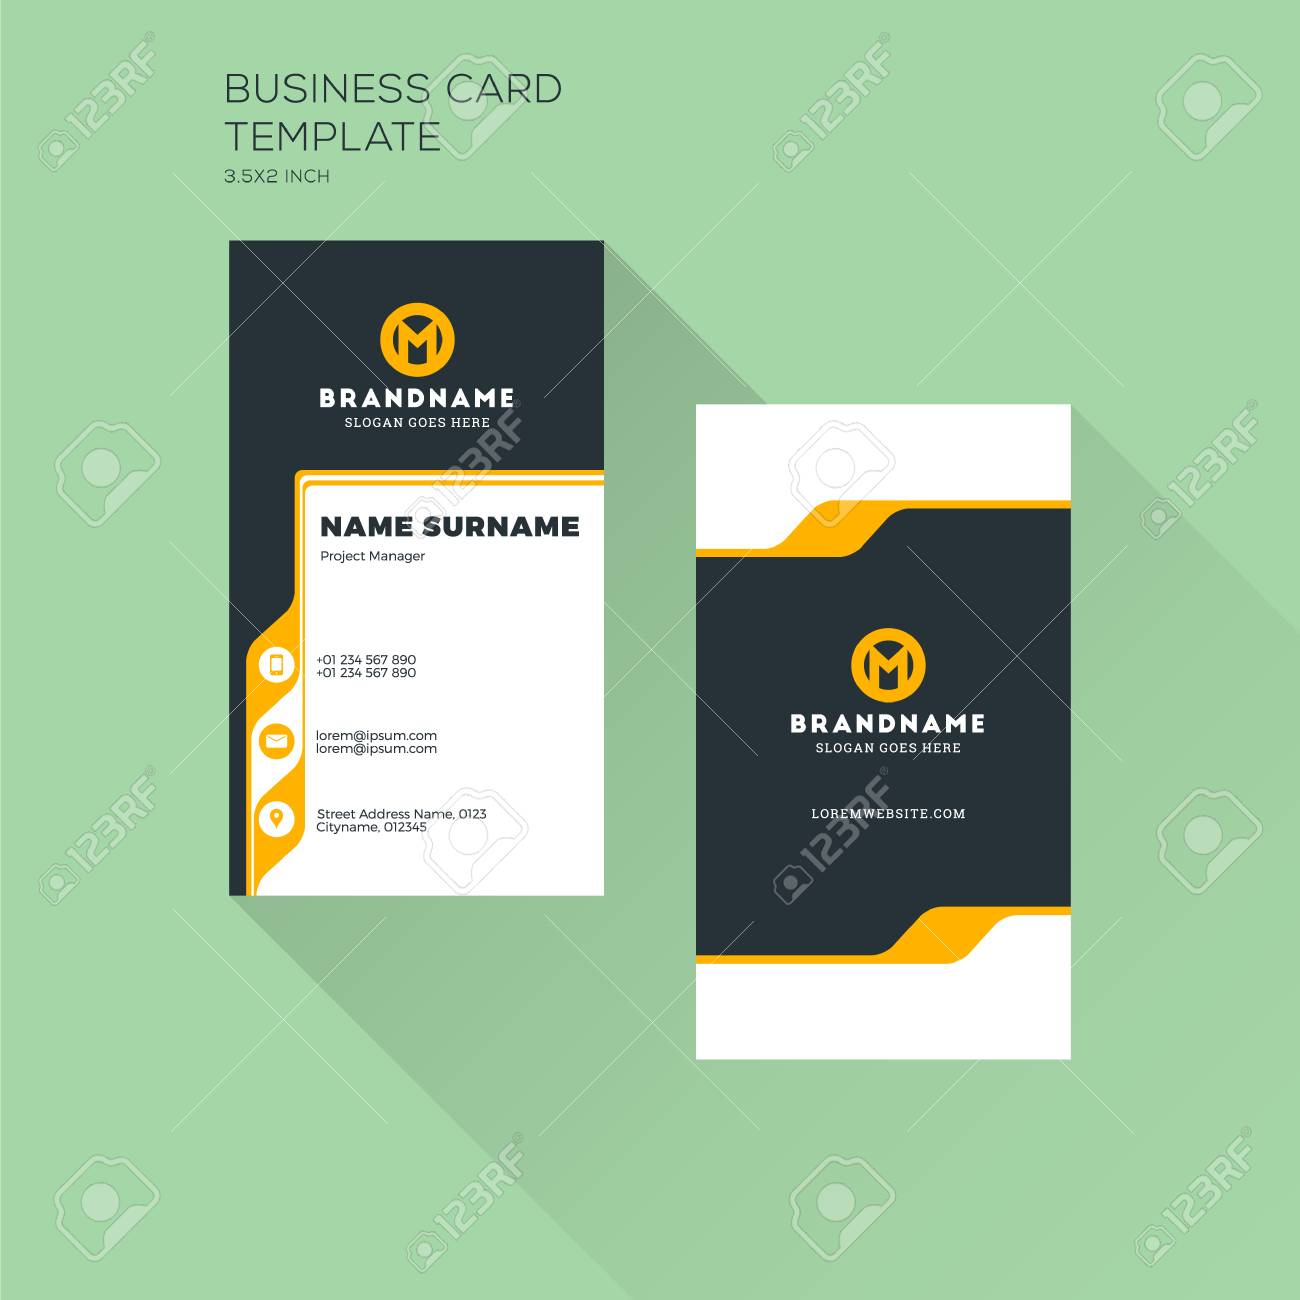 Vertical business card print template personal visiting card vector vertical business card print template personal visiting card with company logo clean flat design vector illustration reheart Gallery